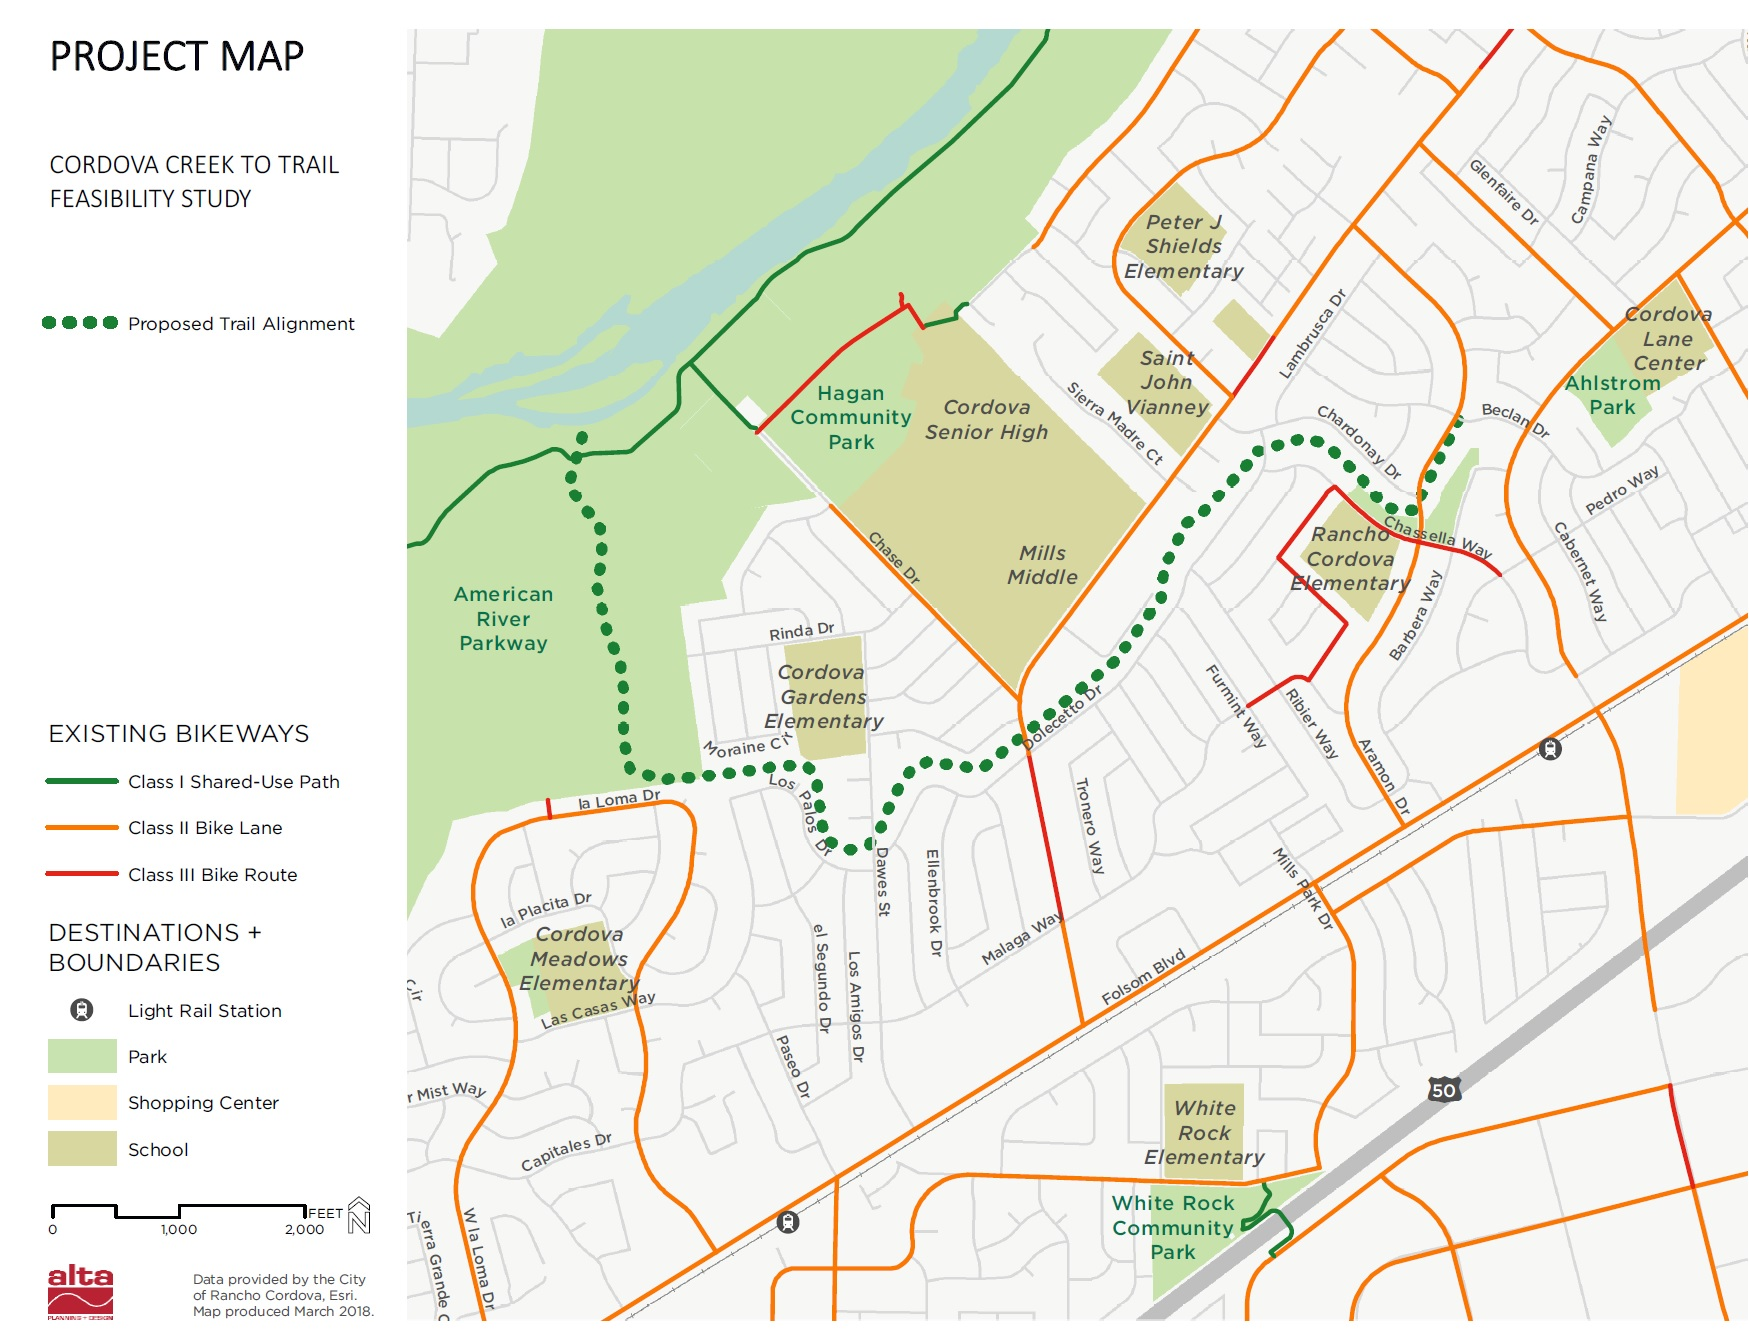 Project Map - Cordova Creek to Trail Feasibility Study